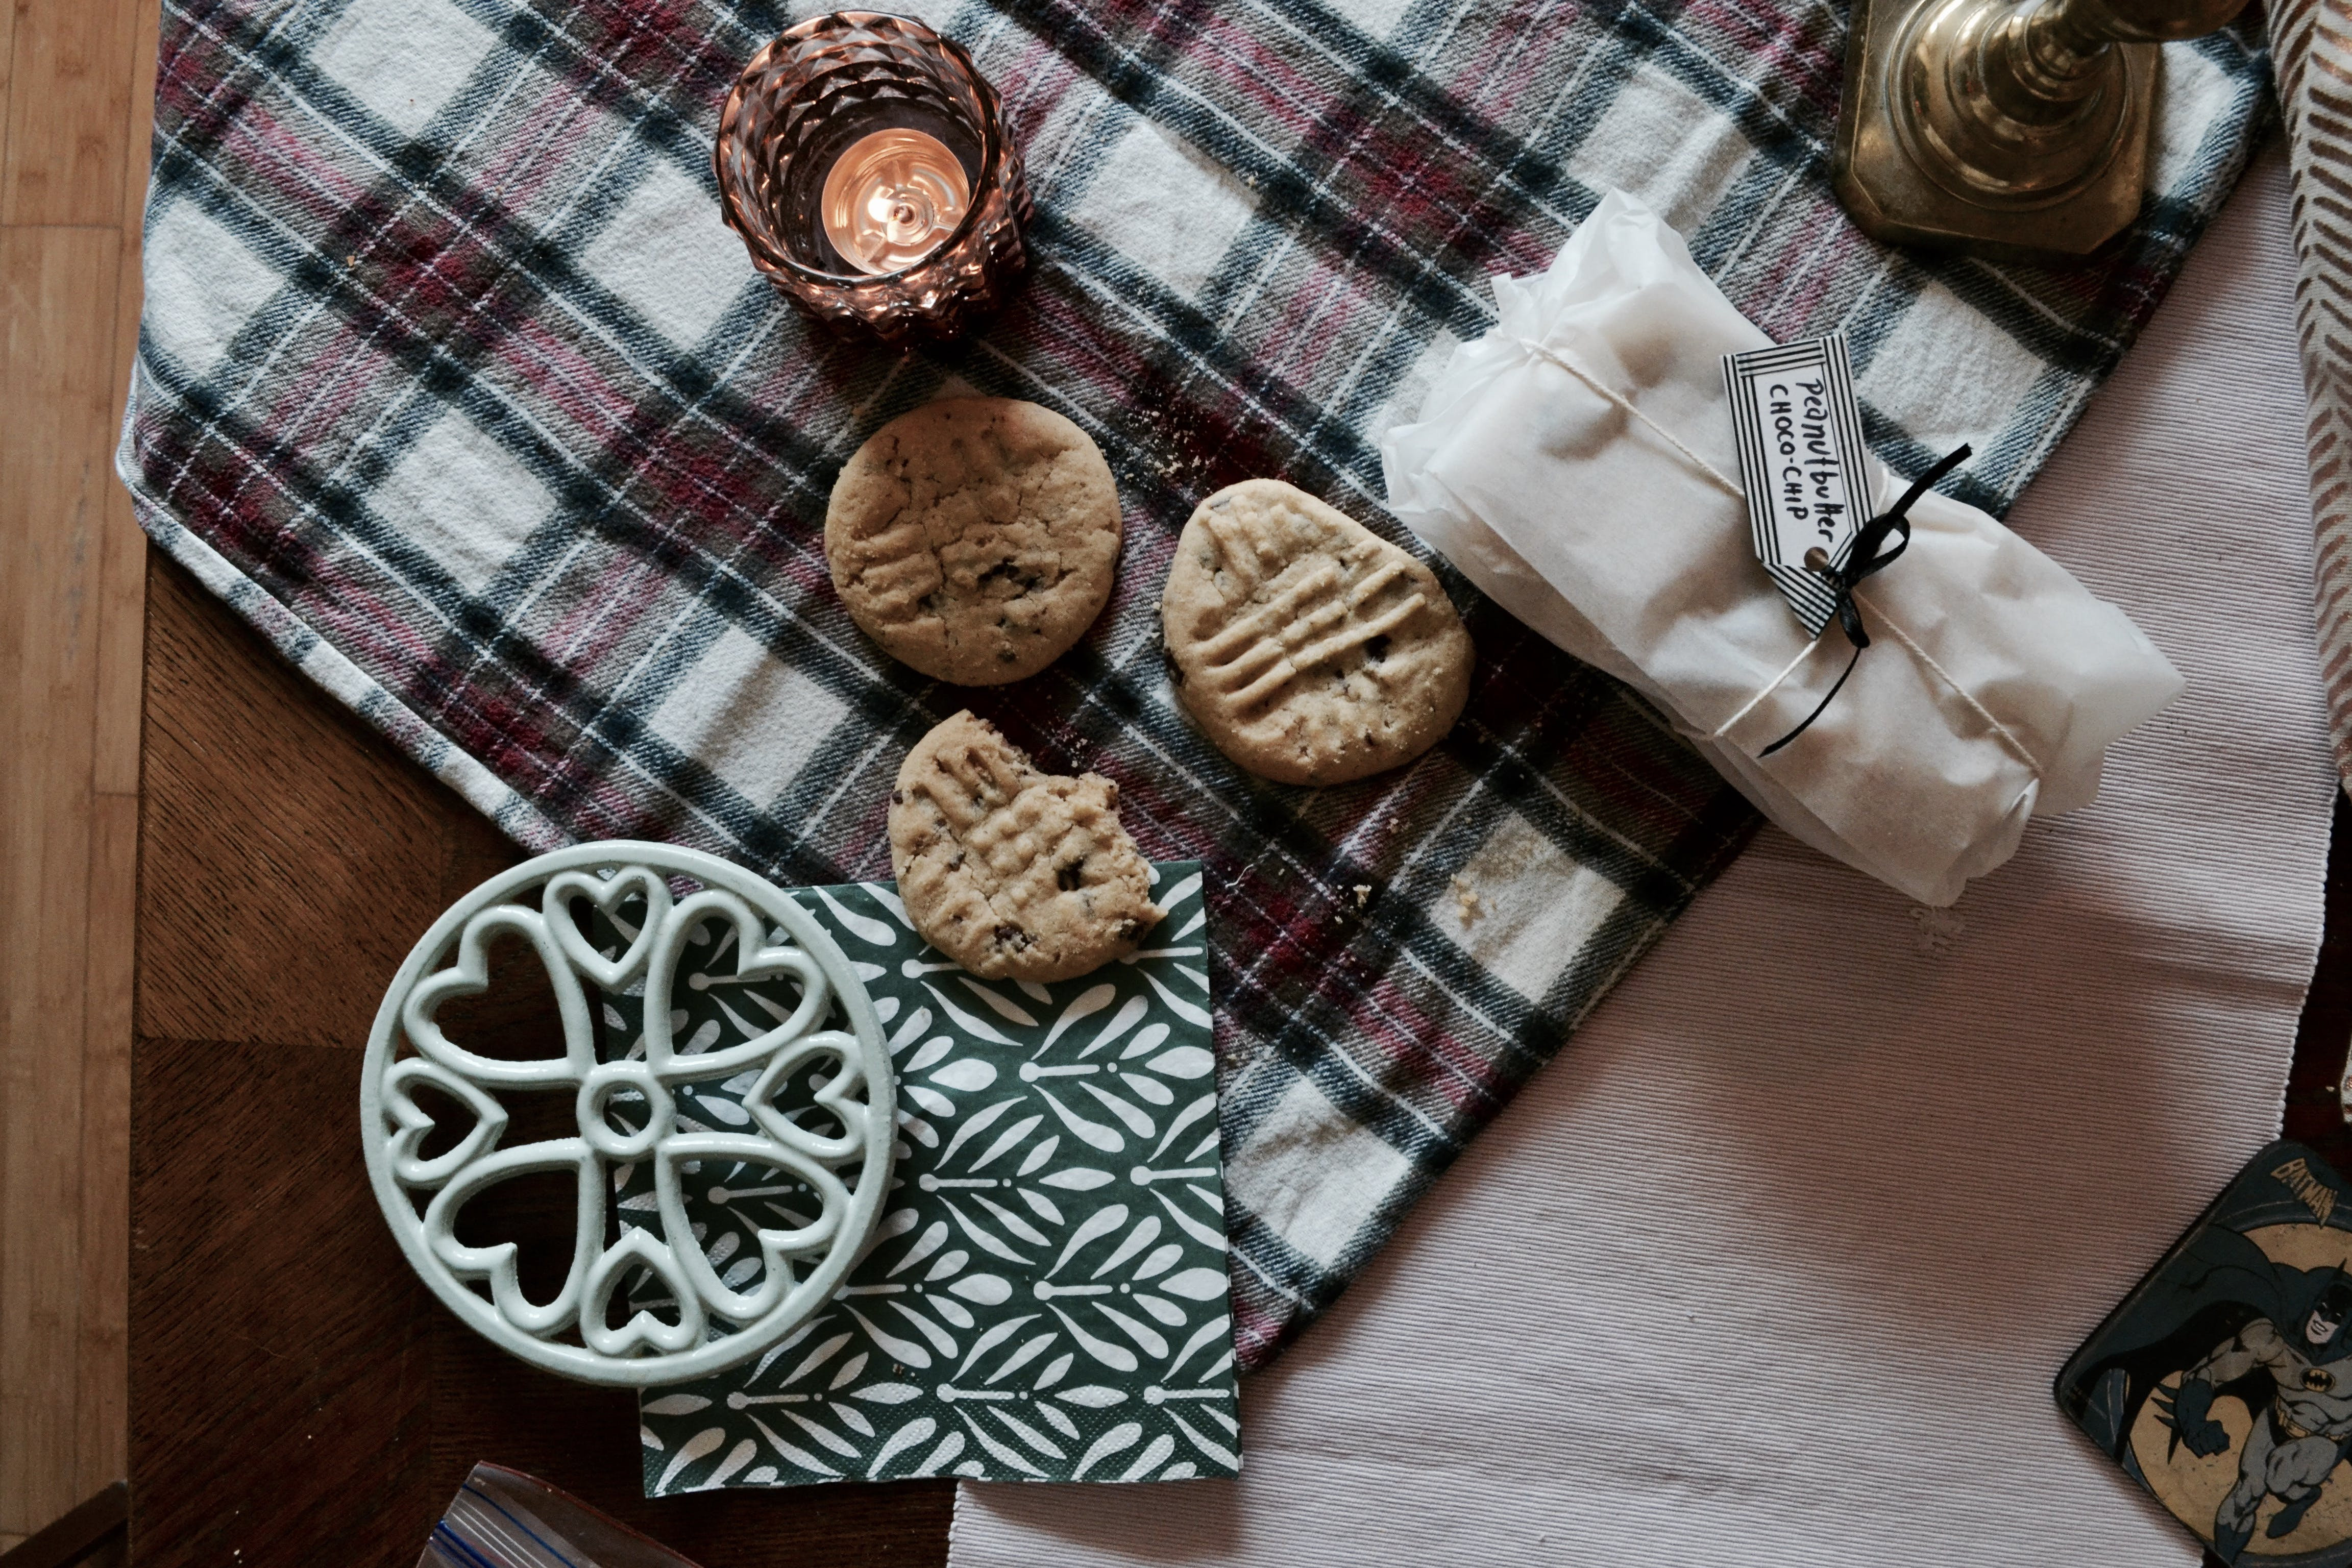 Cookies on a Plaid Mat